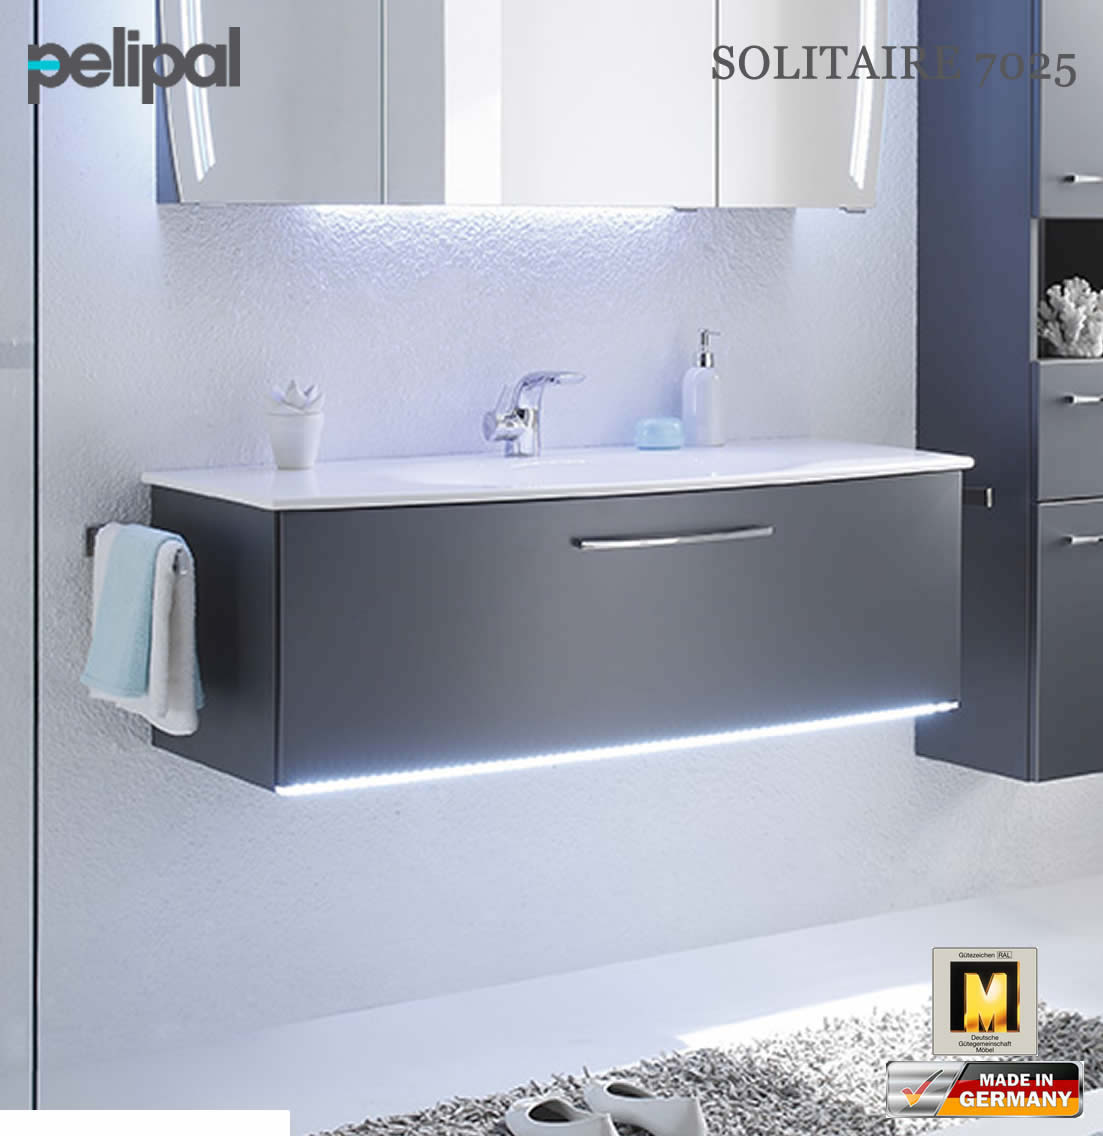 pelipal solitaire 7025 led waschtischunterschrank set mit 1220 mm waschtisch 7025 wtusl 04. Black Bedroom Furniture Sets. Home Design Ideas